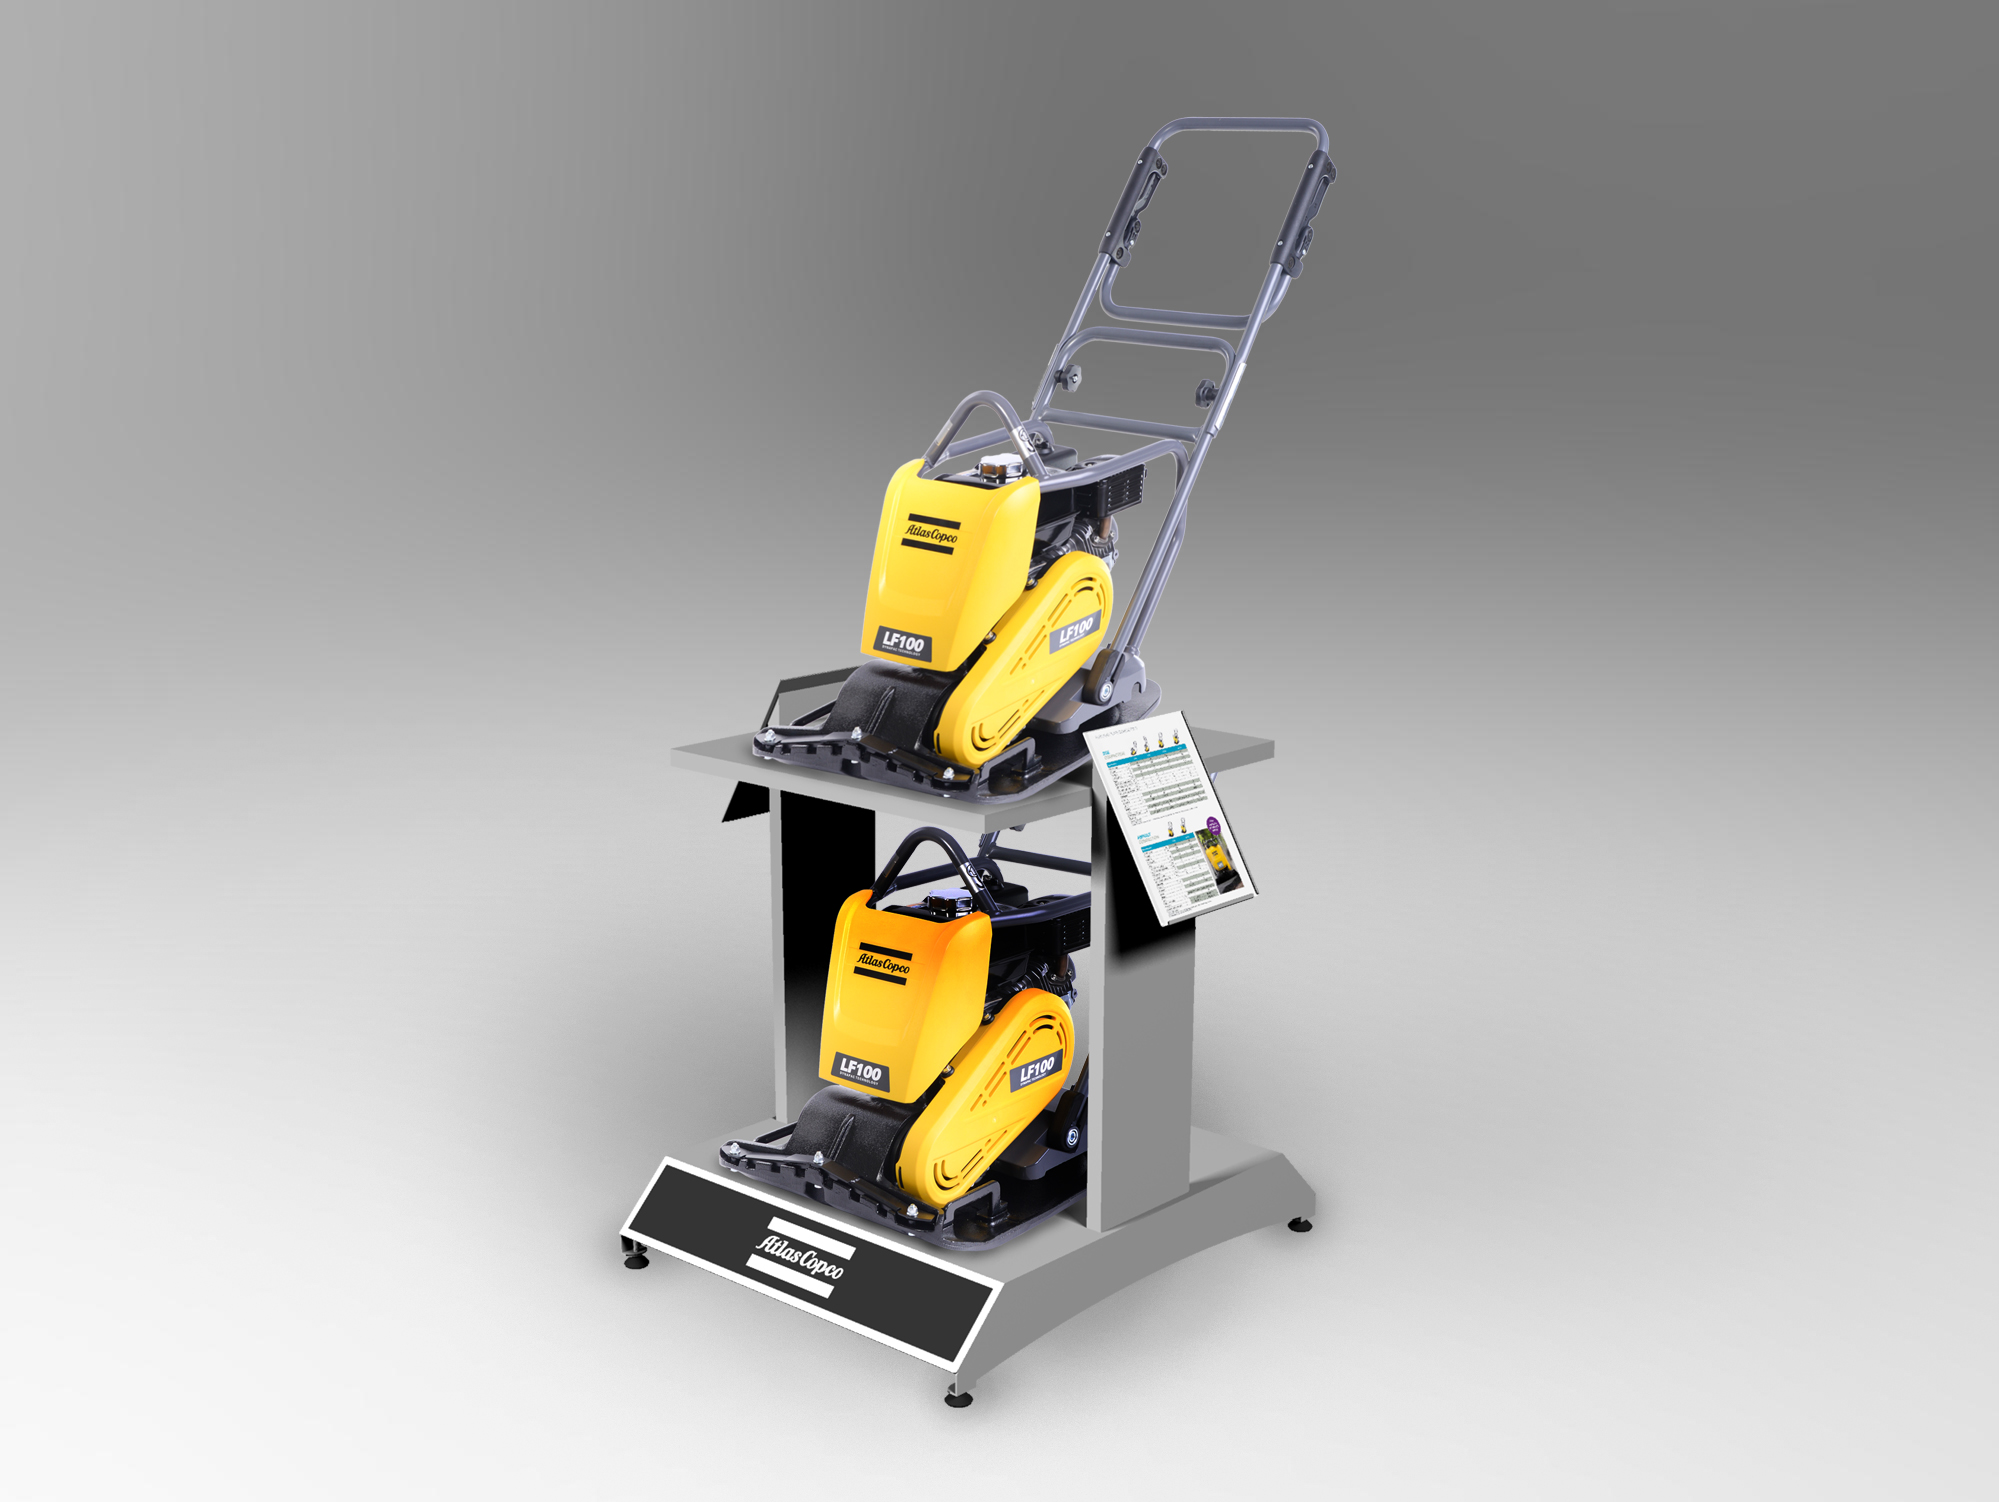 2-Tier Equipment Display - Heavy duty design to show two pieces of equipment